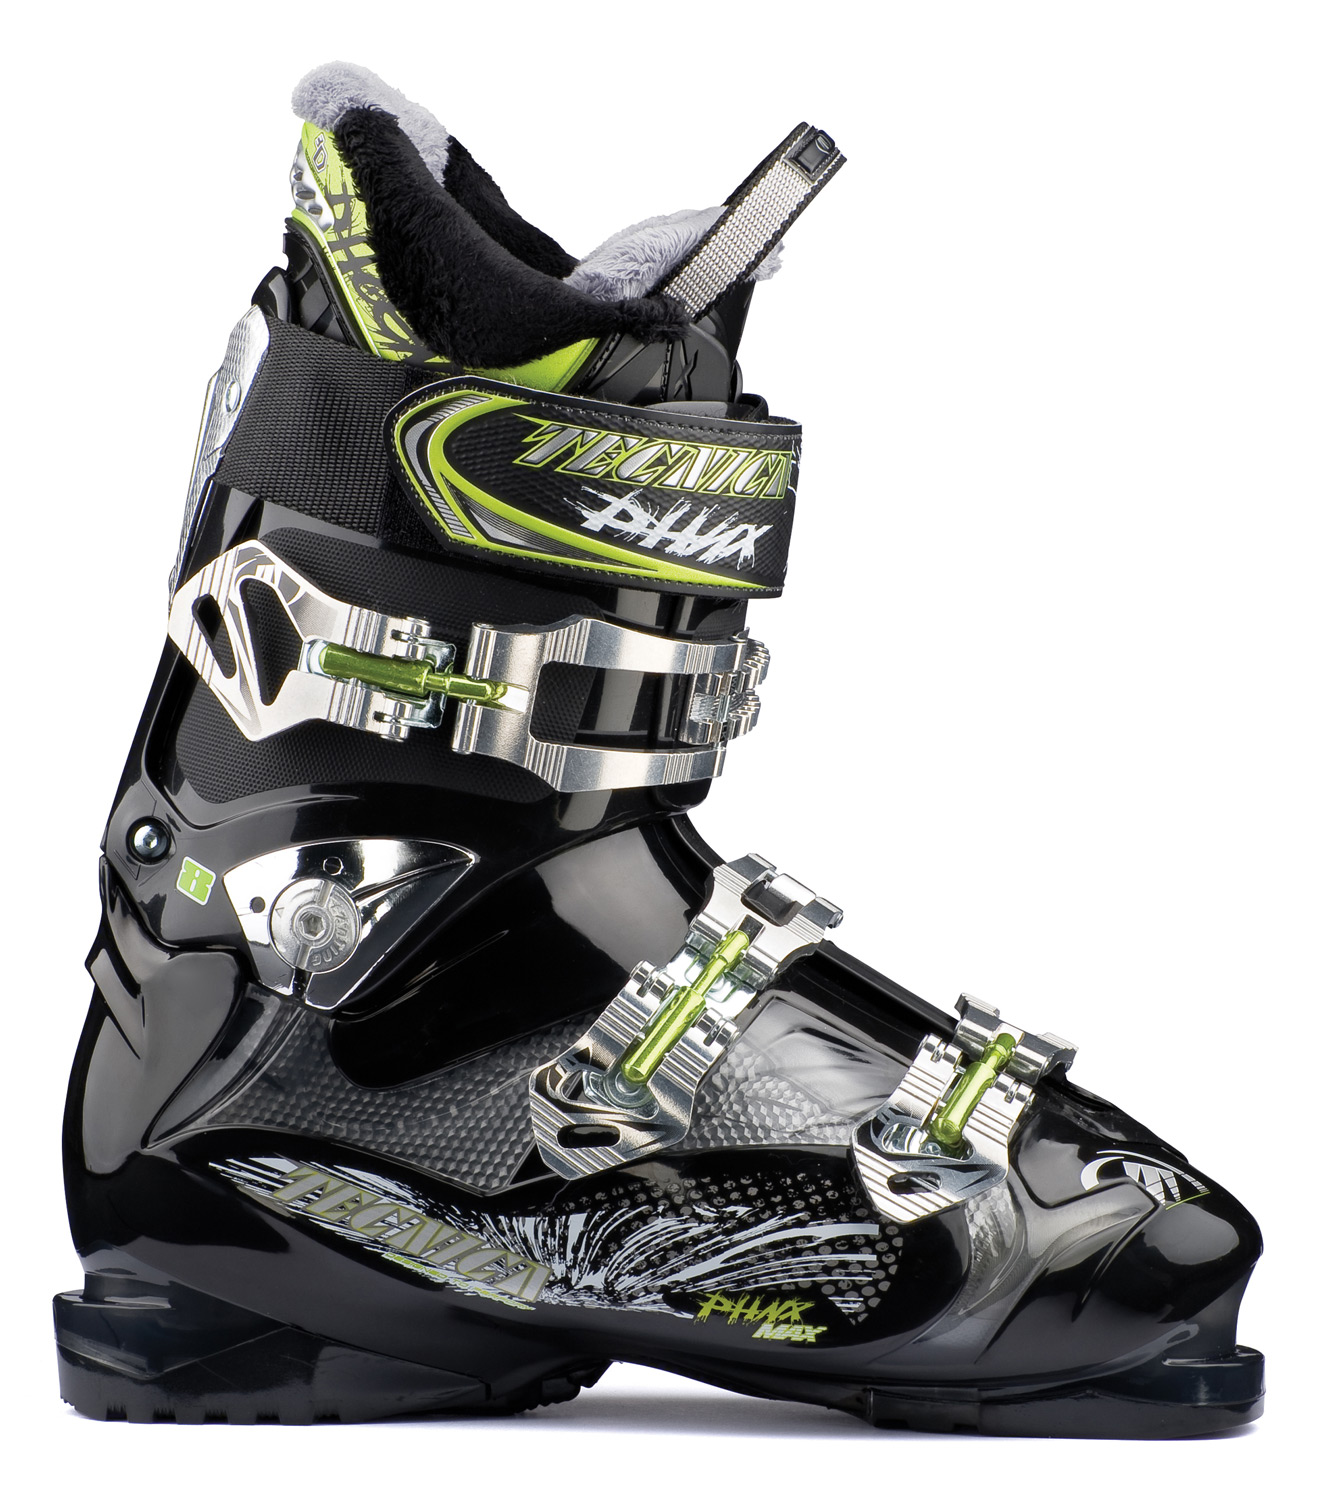 Ski Key Features of the Tecnica Phoenix Max 8 Ski Boots: 3 Density Technology Cuff Alignment Rear Cuff Plate 45mm Velcro Powerstrap Alu Buckles 9 Teeth Cuff Catch with walk position Tongue Handle Pull Strap 3D ComfortFit Liner Flex: 80 Last: 102mm: C-E Widths - $239.95